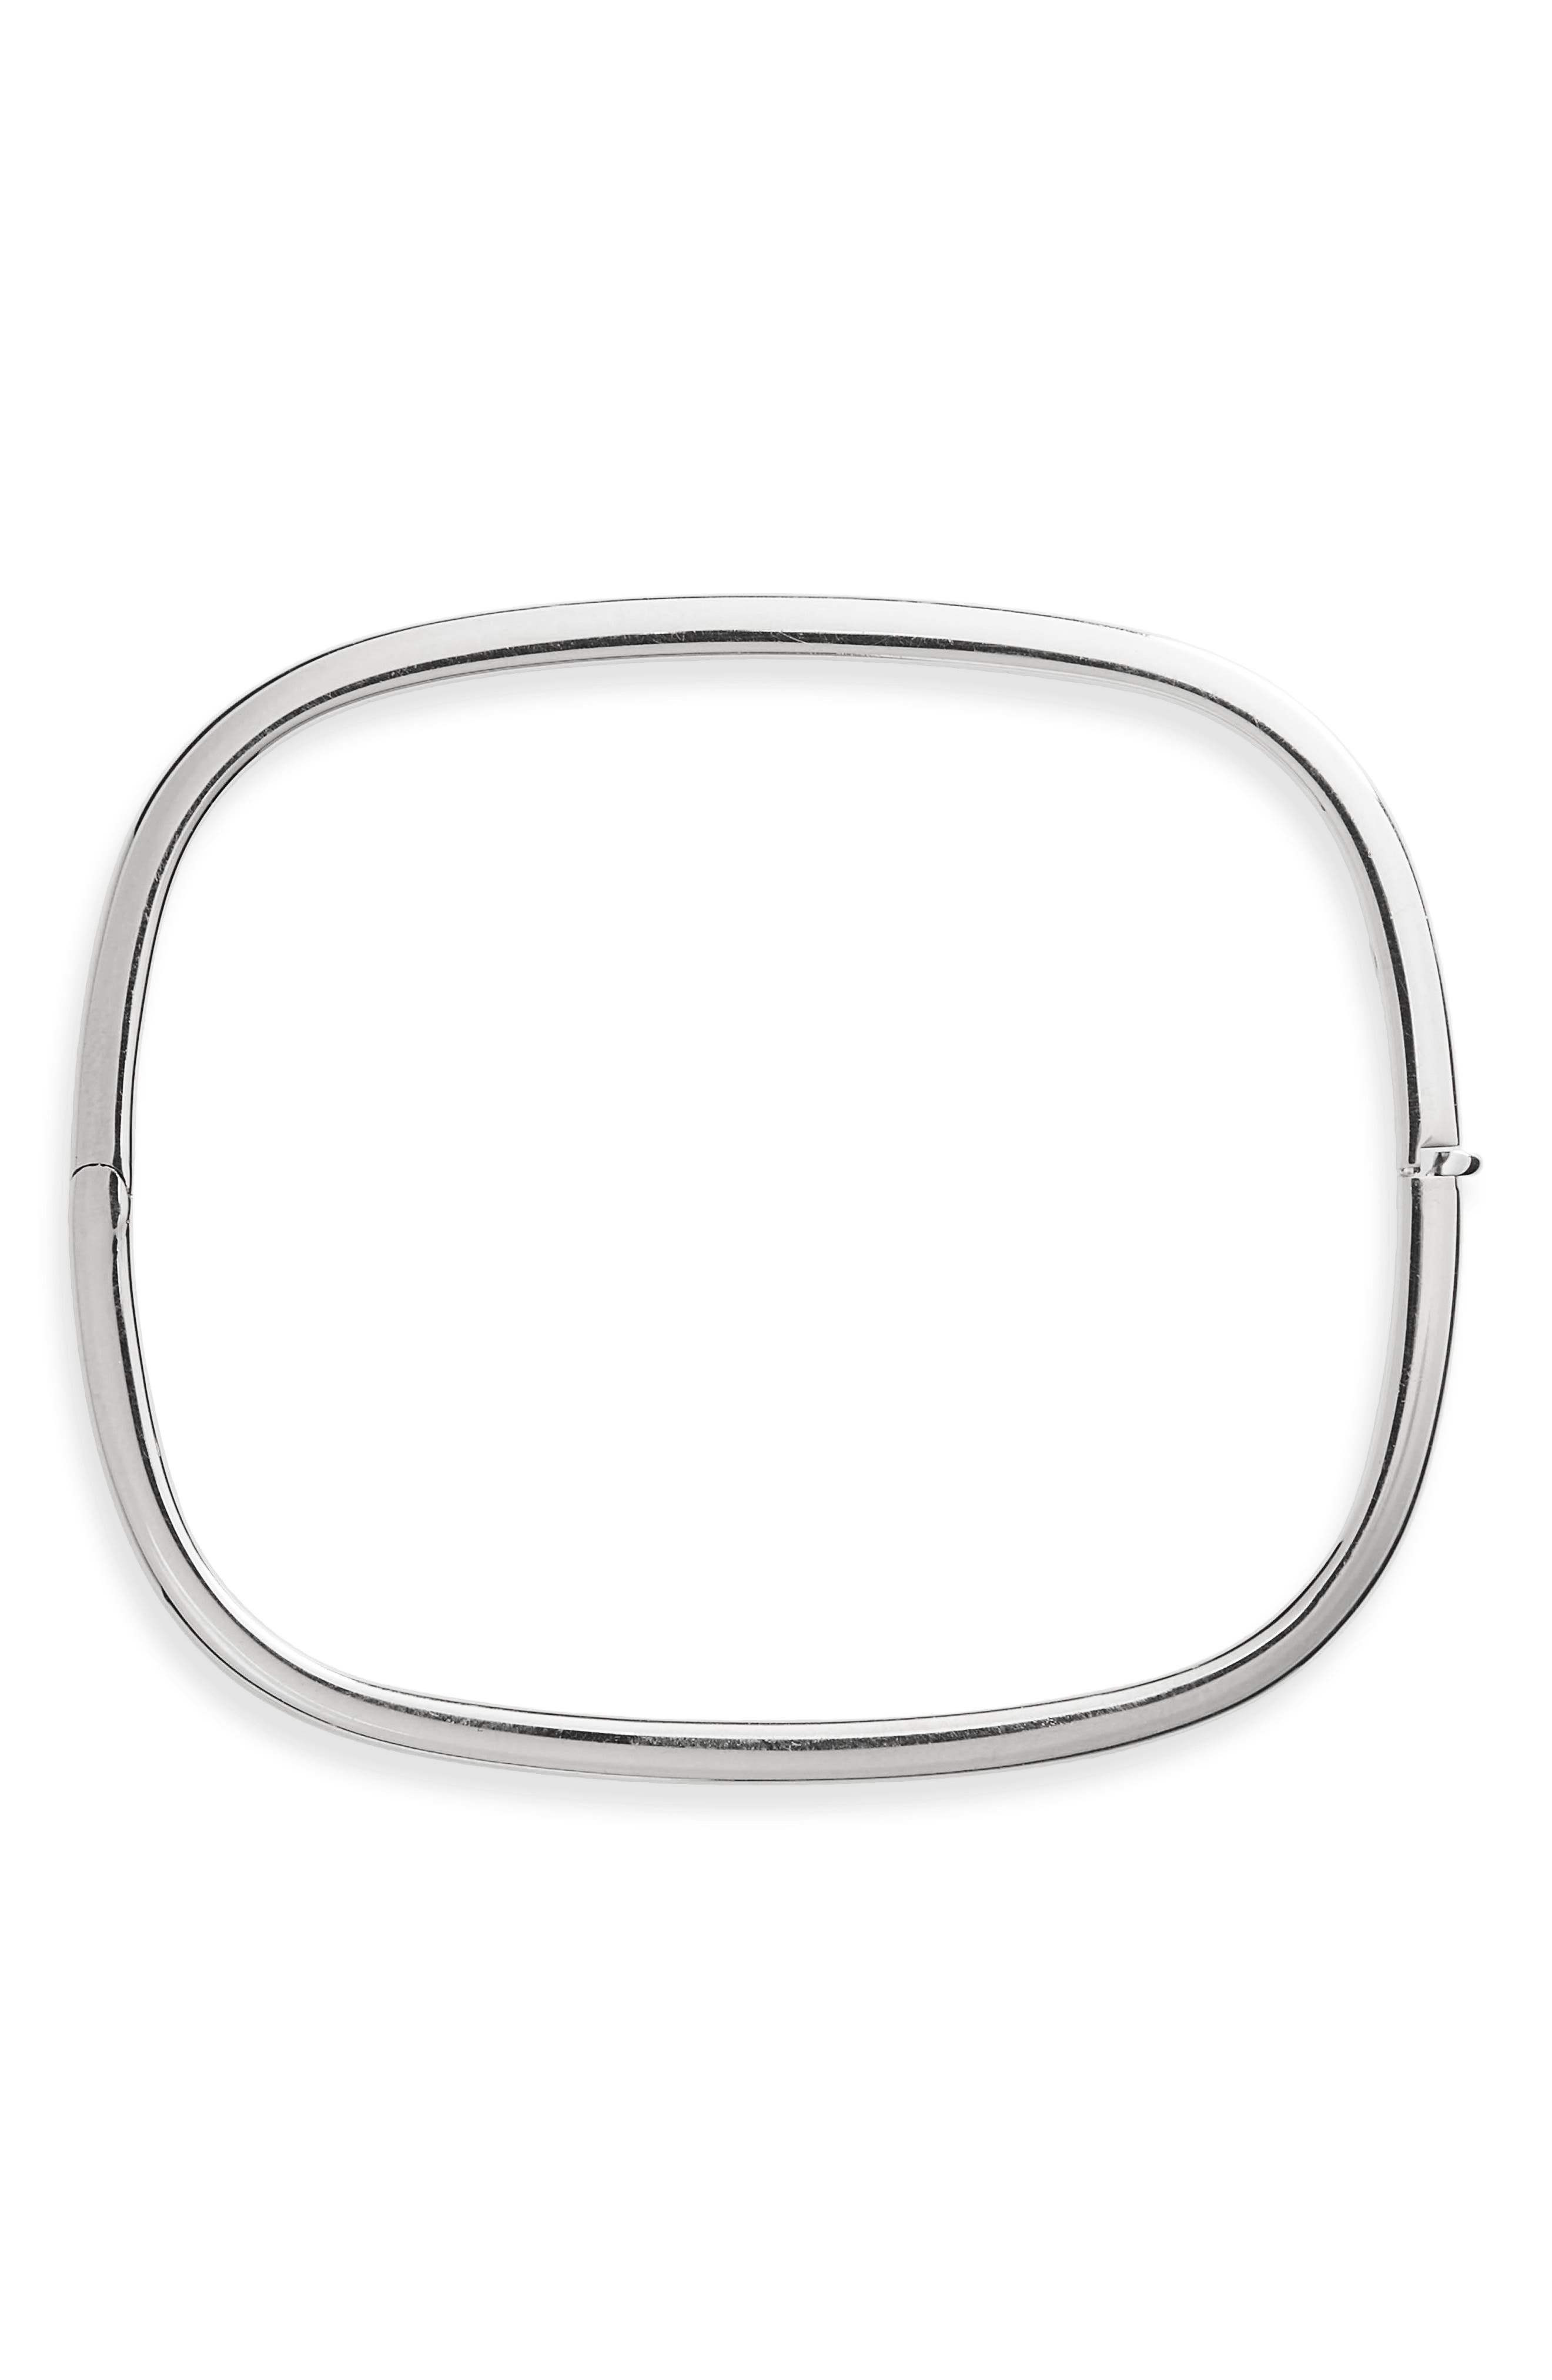 Soft Square Bangle Bracelet,                         Main,                         color, WHITE GOLD